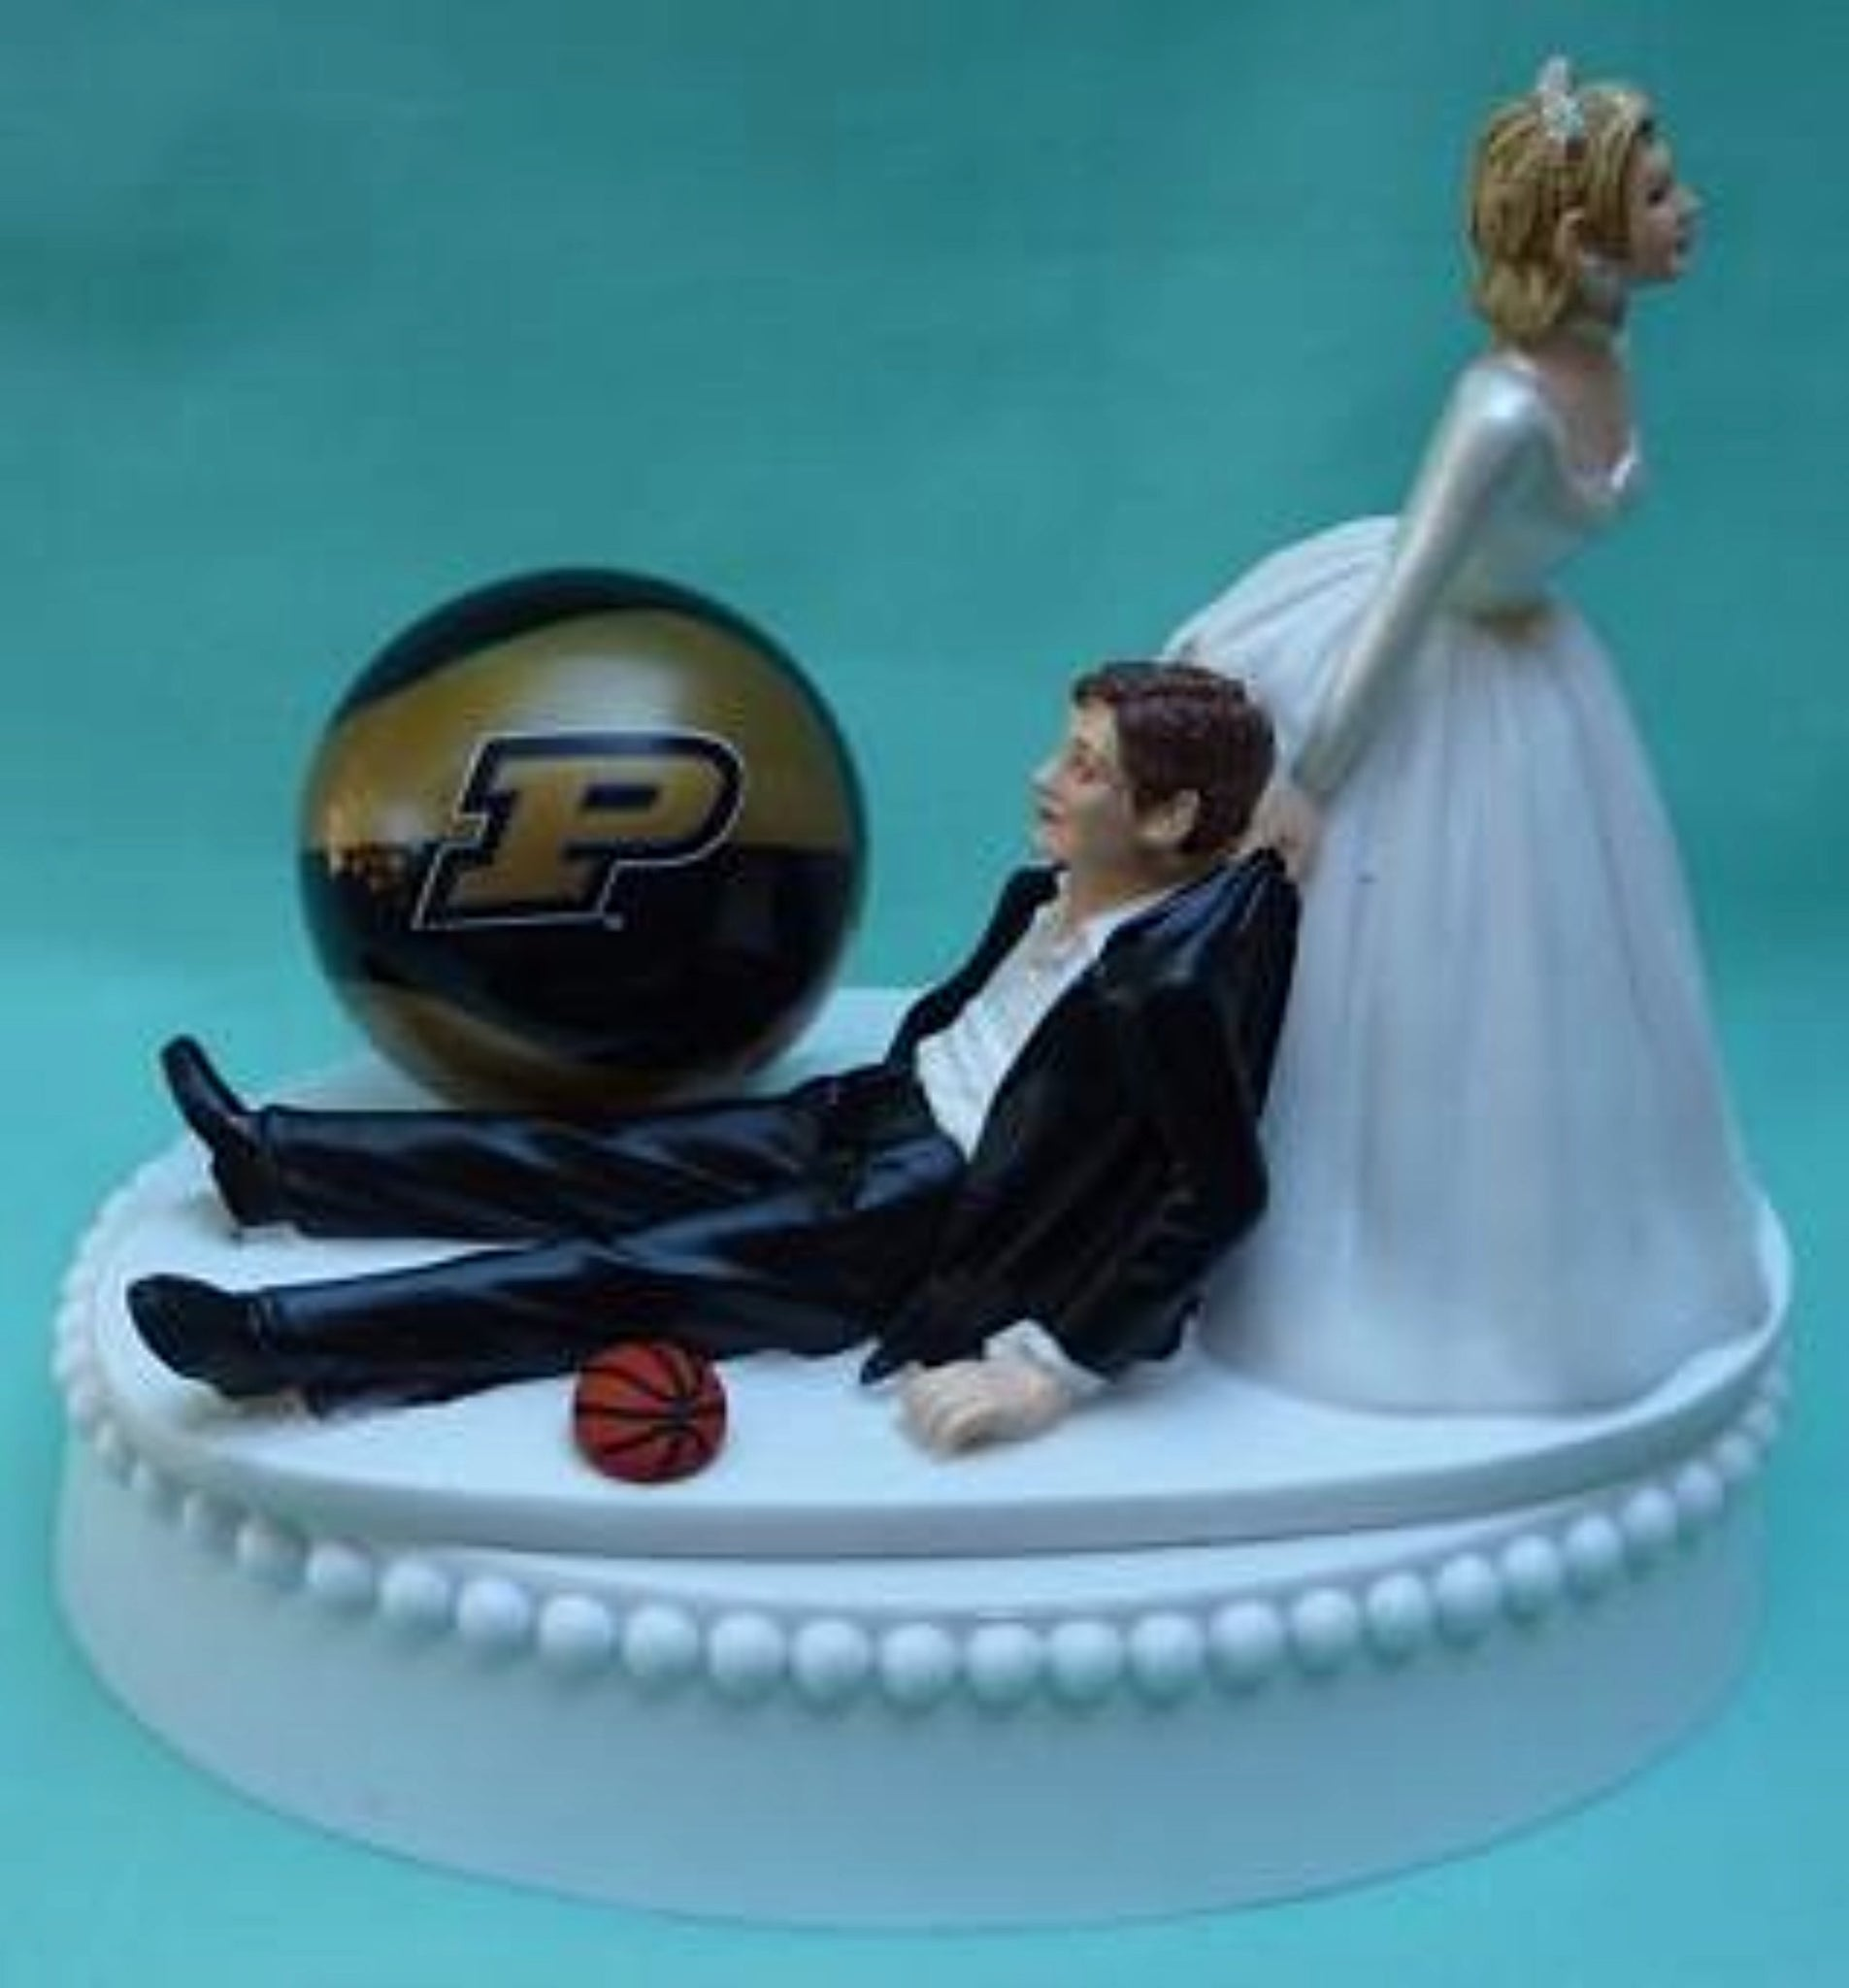 Purdue basketball wedding cake topper Boilermakers University sports fans funny bride groom humorous Fun Wedding Things